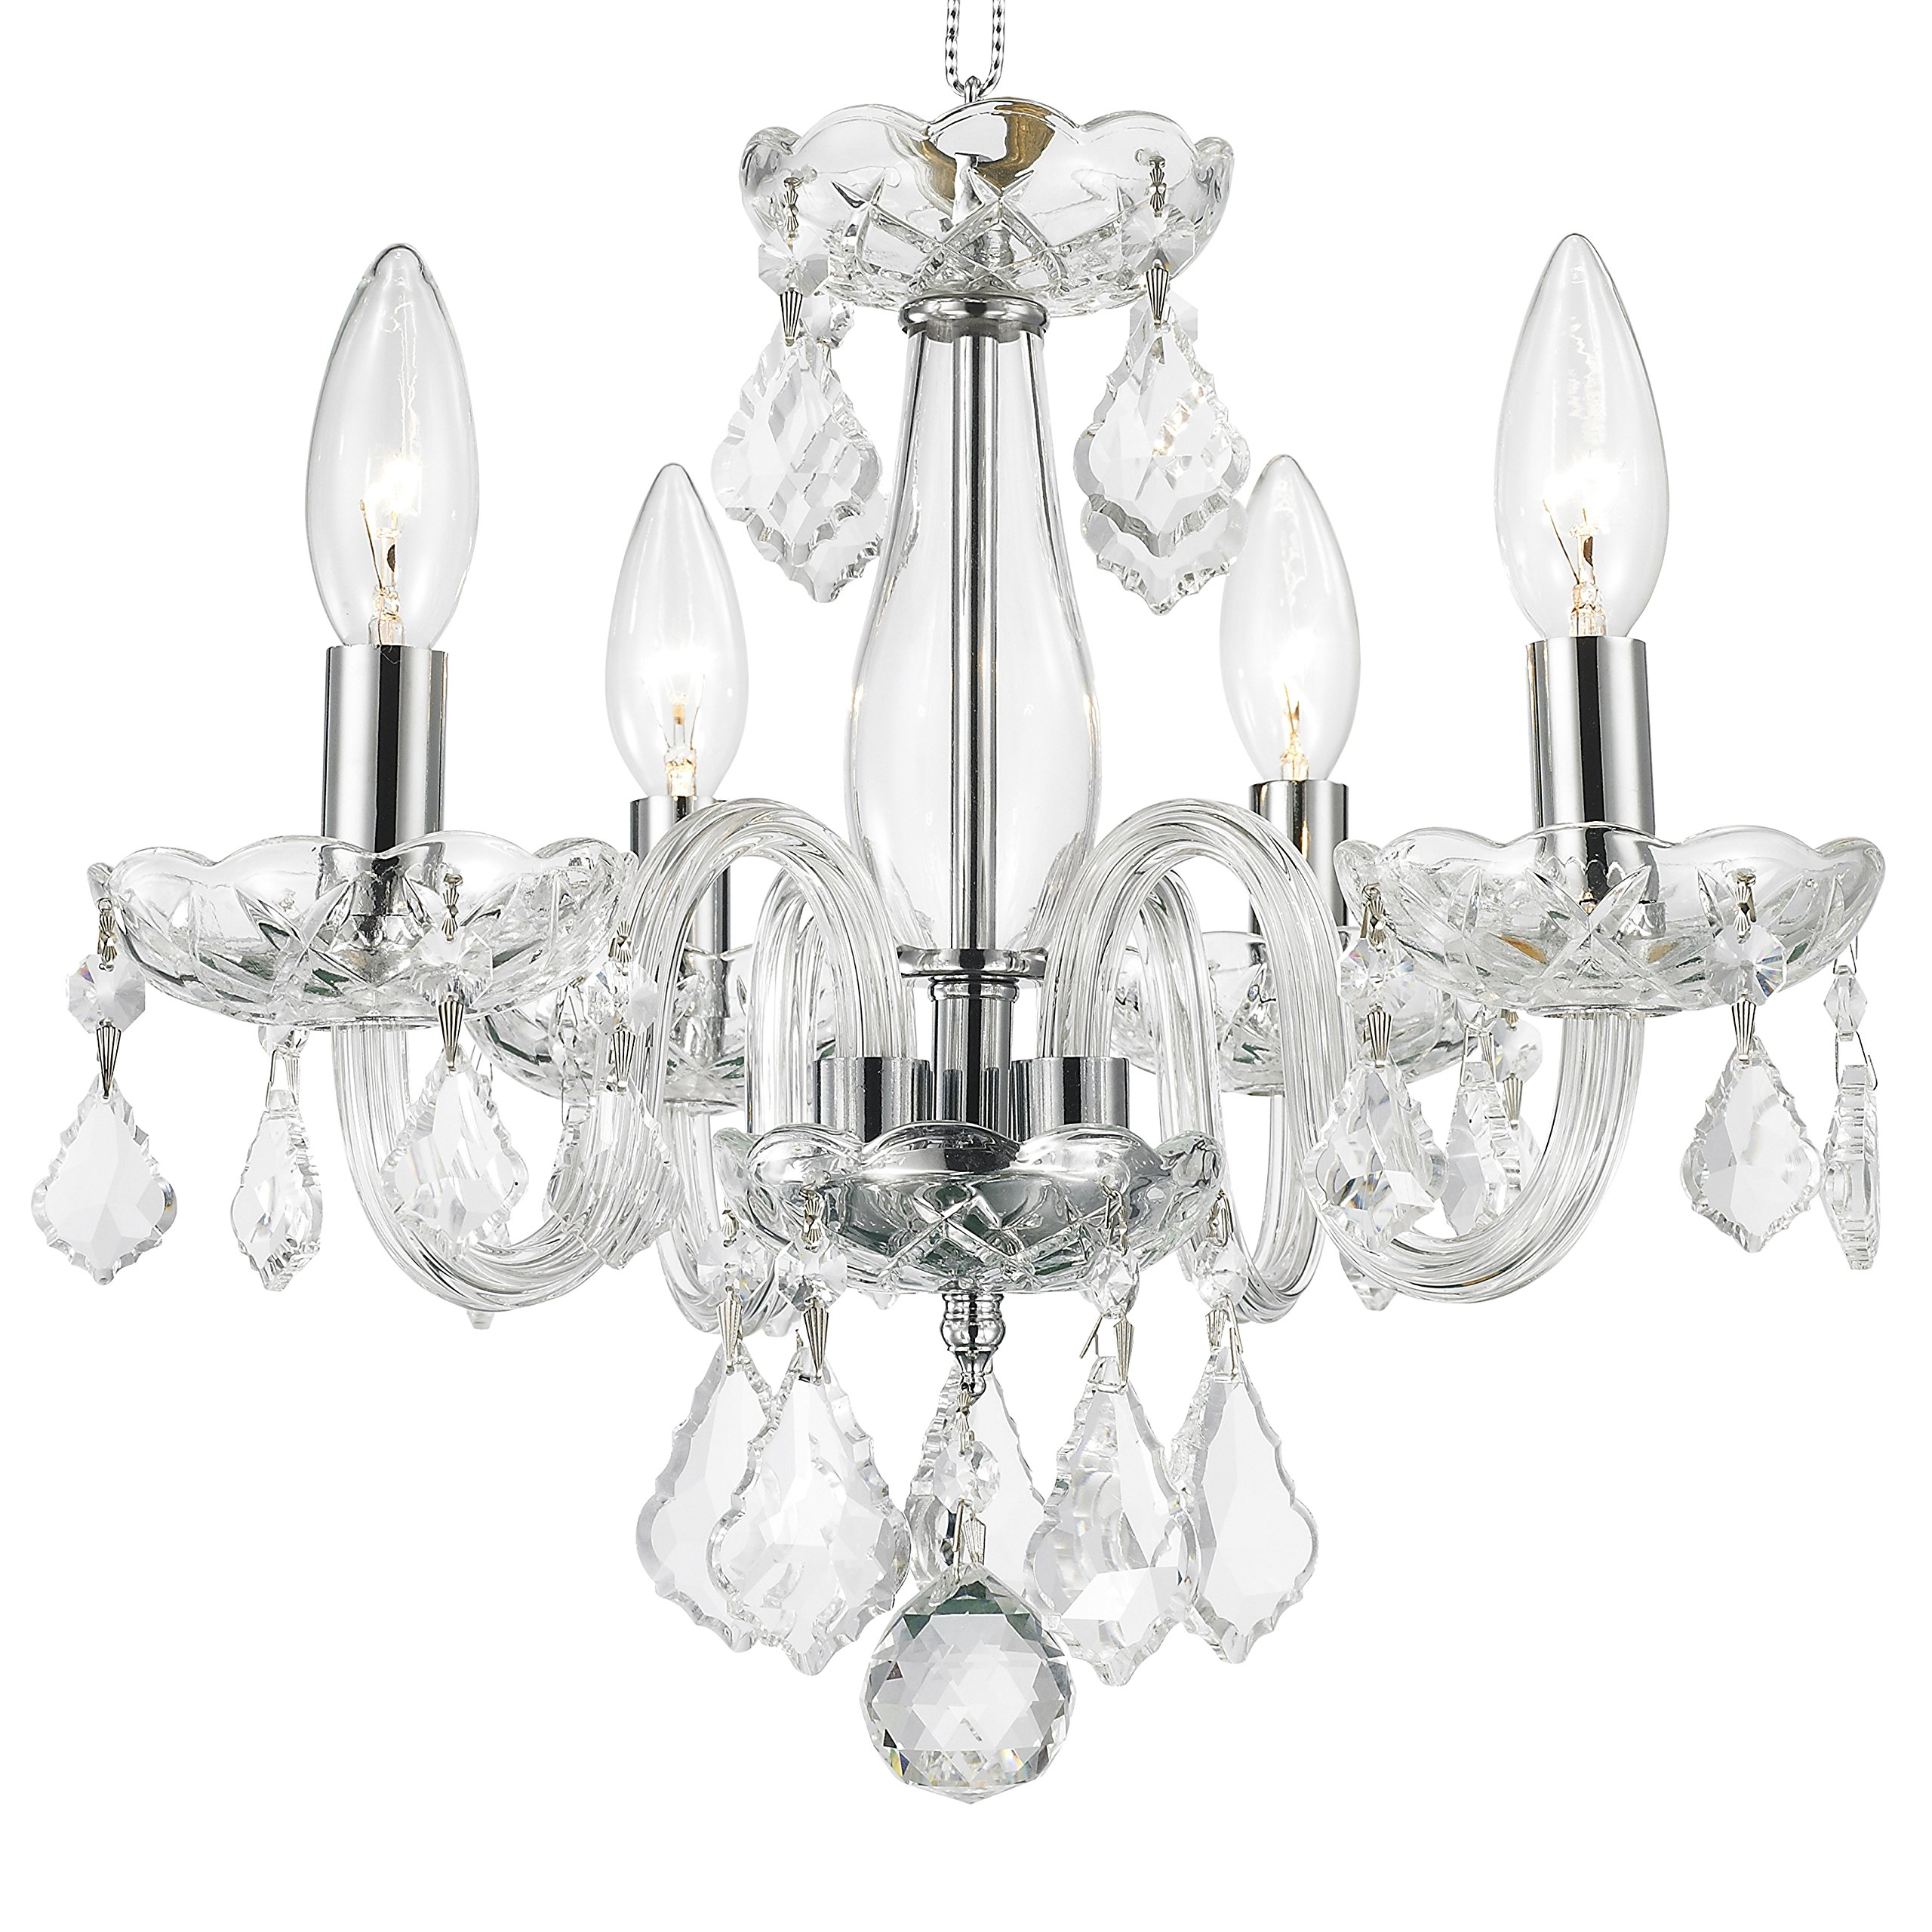 Worldwide Lighting W83100C16-CL Clarion 4 Light Mini Crystal, 16'' D x 12'' H, Chrome Finish and Clear Crystal Chandelier